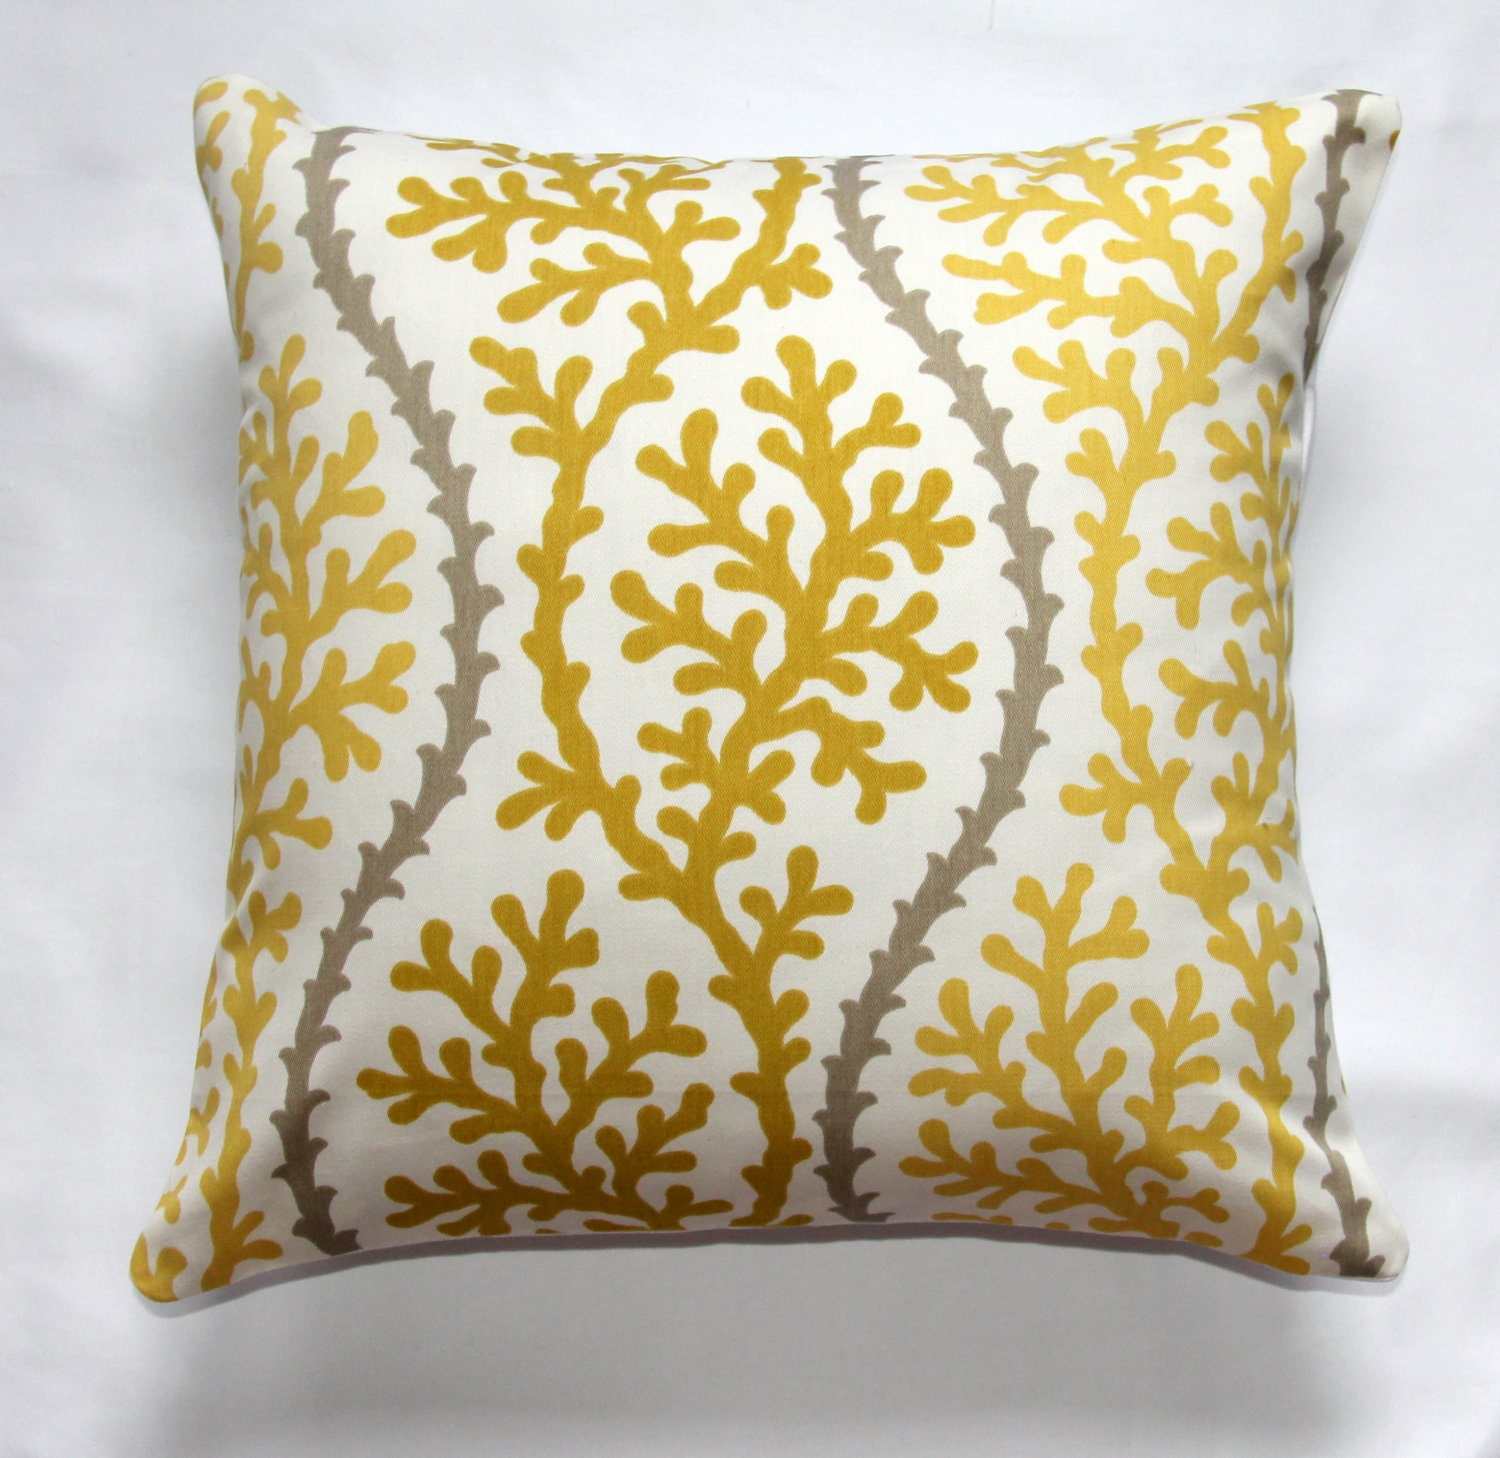 Unique Decorative Accent Pillows : Pillows decorative pillow accent pillow by ModernTouchDesigns